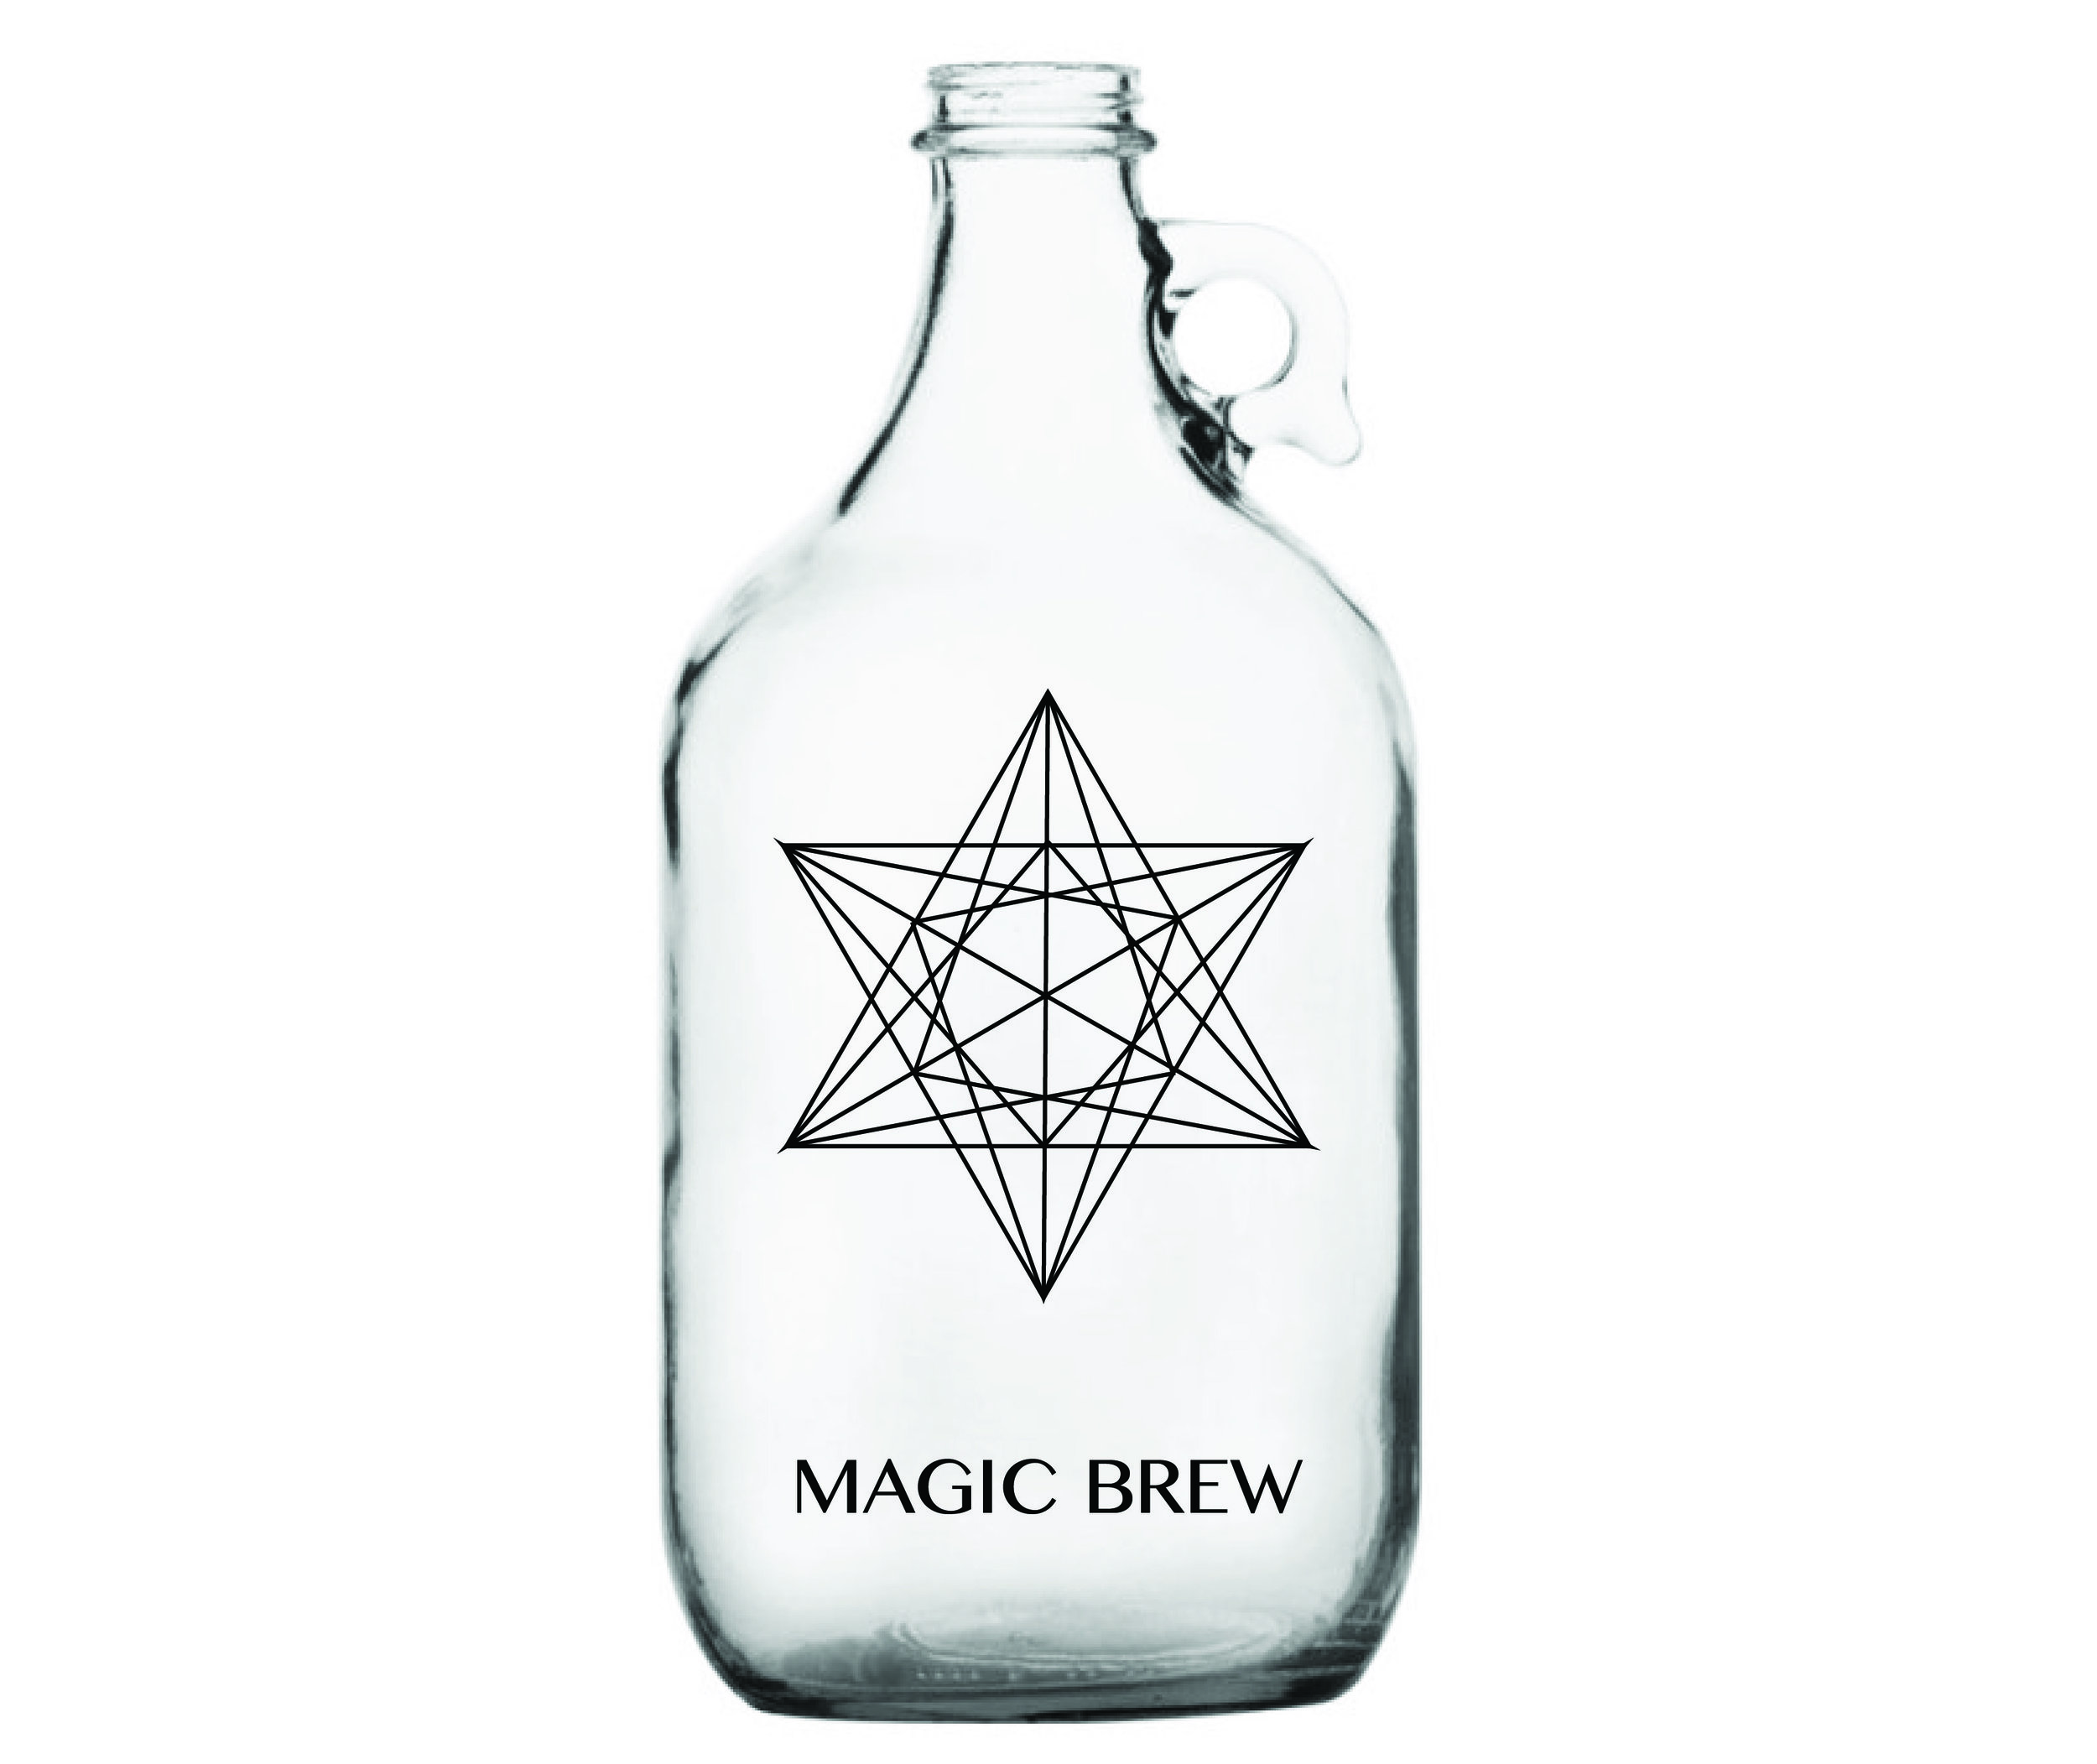 magic brew on growler label.jpg